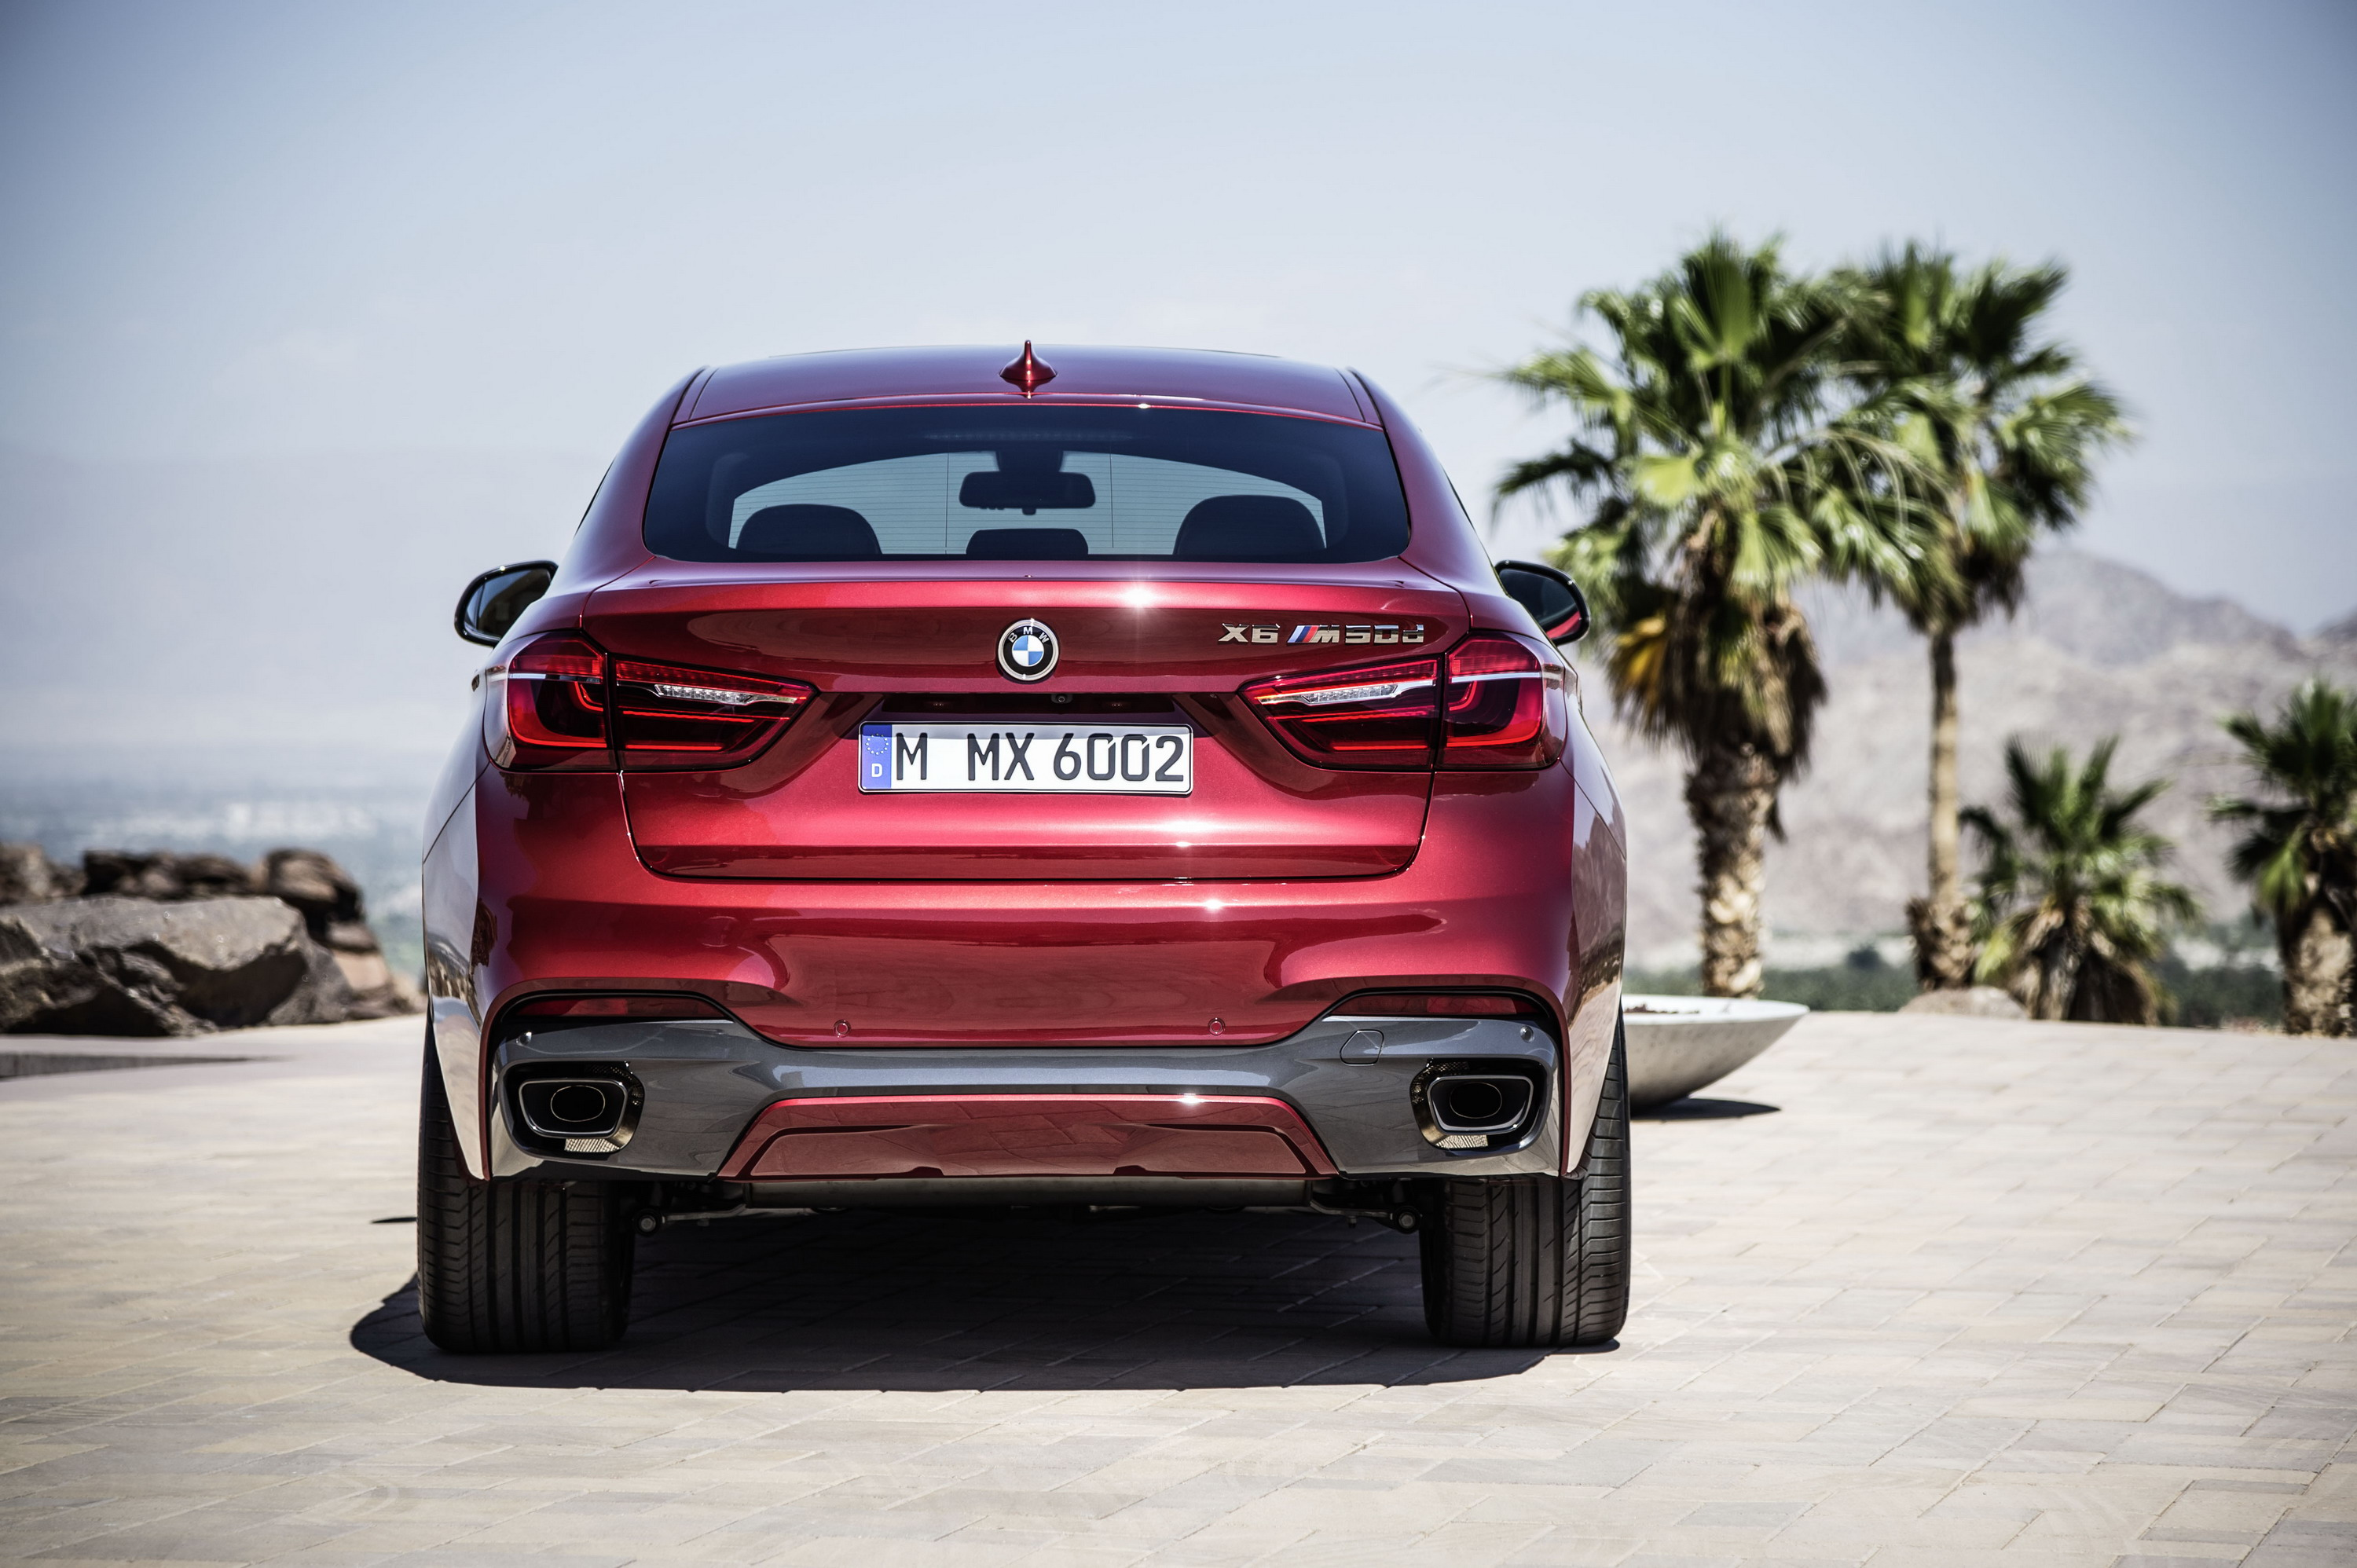 2015 Bmw X6 M50d Review Top Speed